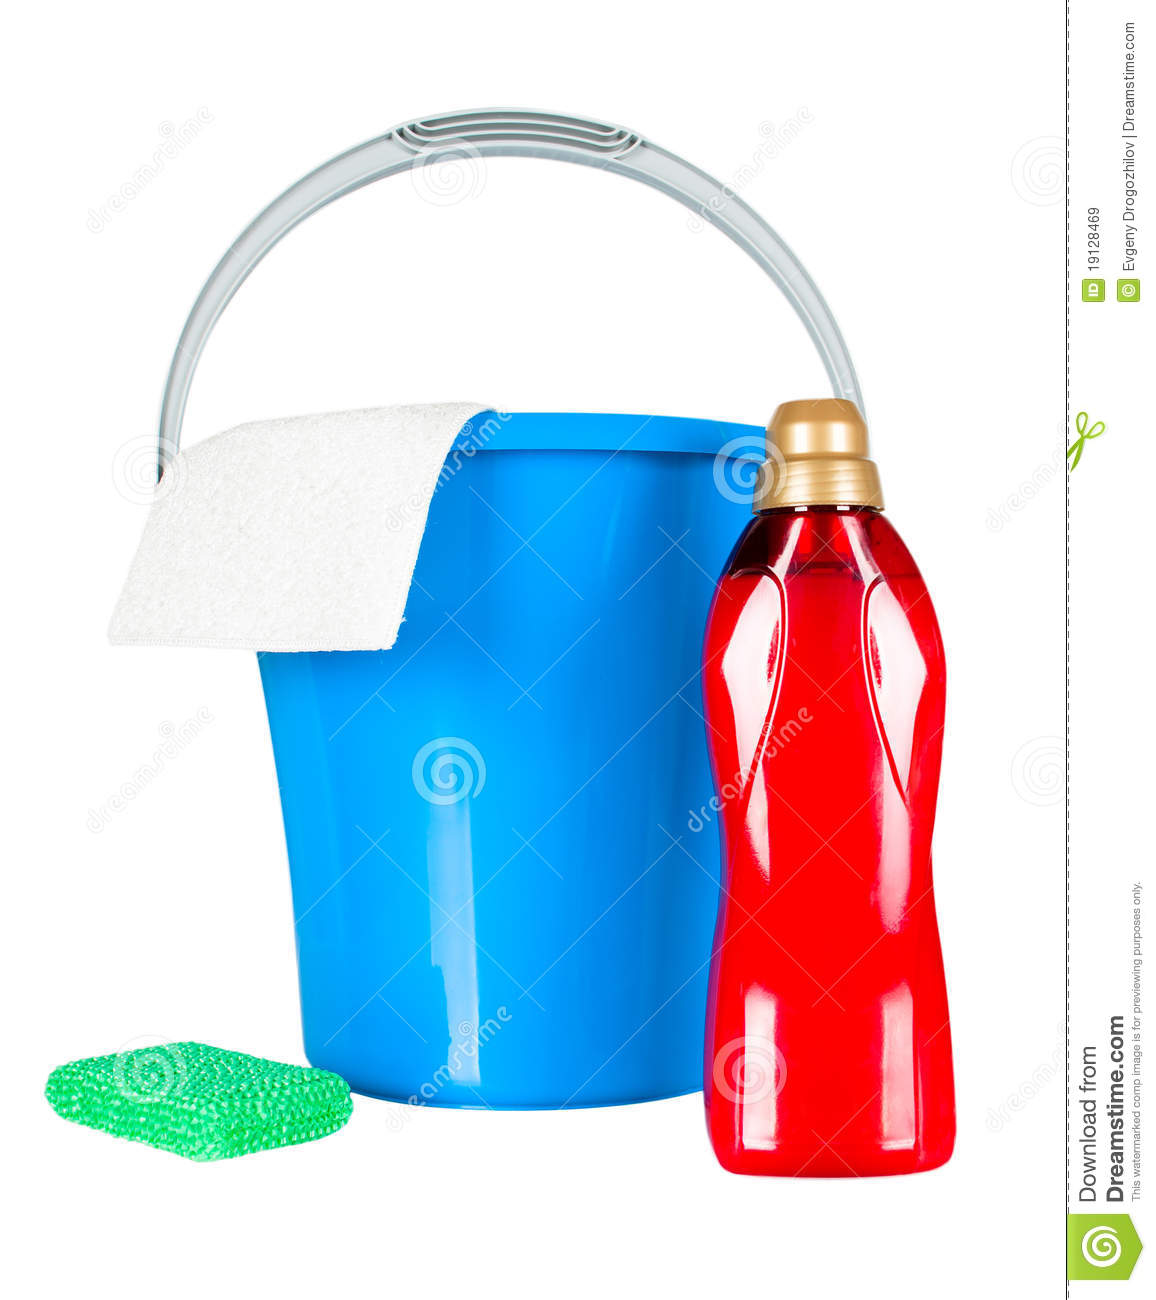 Plastic Bucket With Cleaning Supplies Royalty Free Stock Images - Image: 19128469